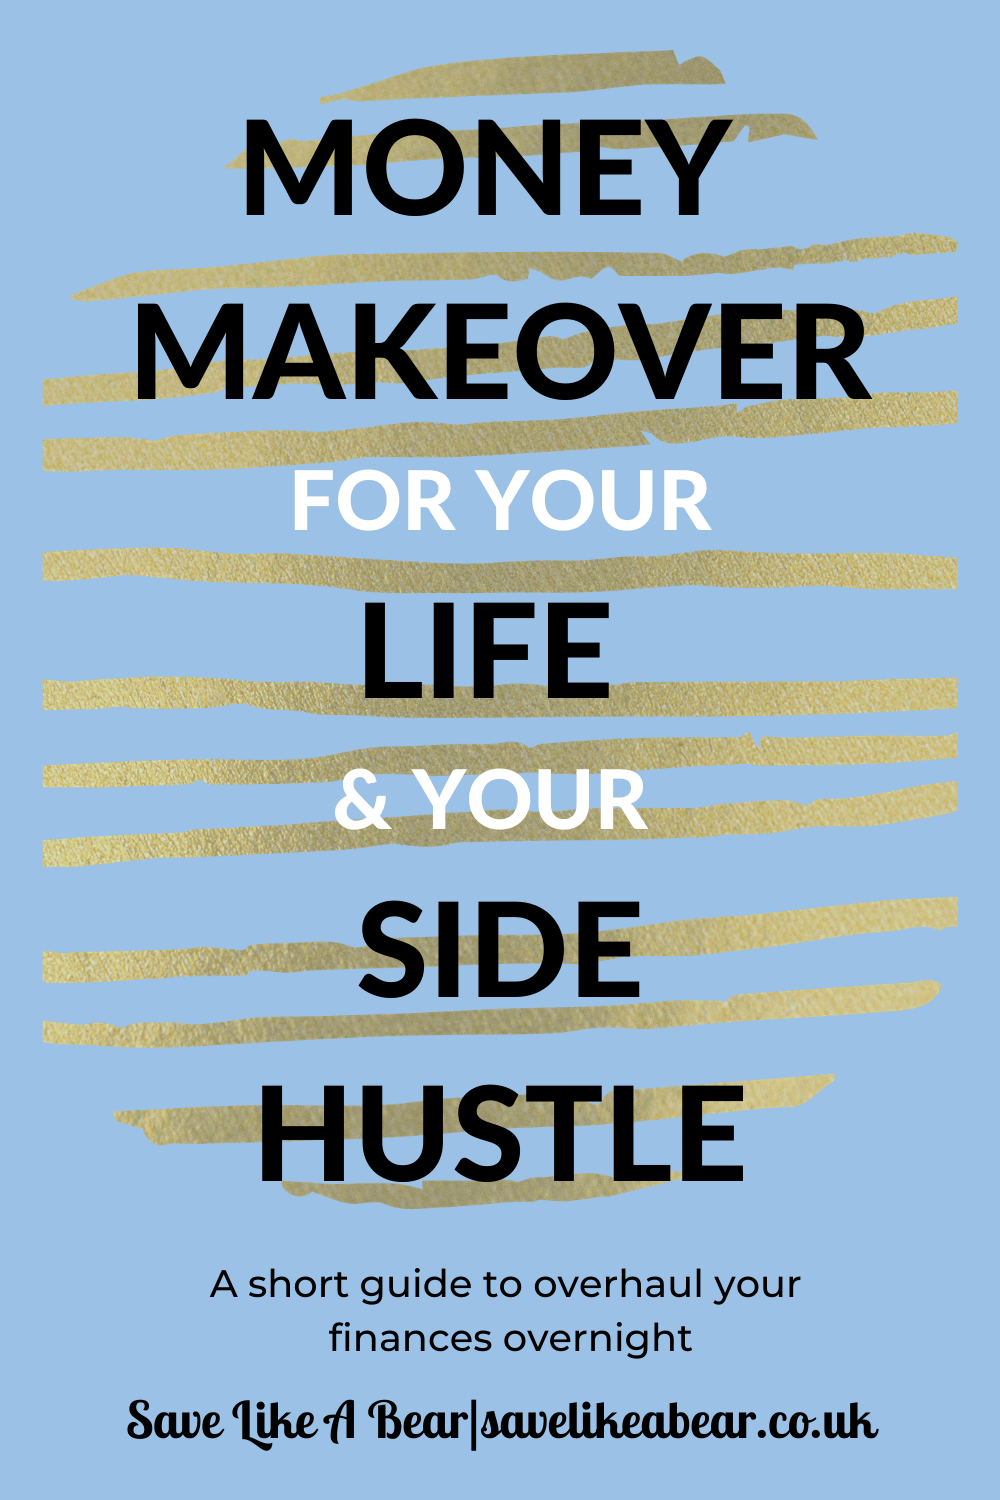 Blue ebook pinterest pin titled Money Makeover For Your Life & Your Side Hustle by savelikeabear